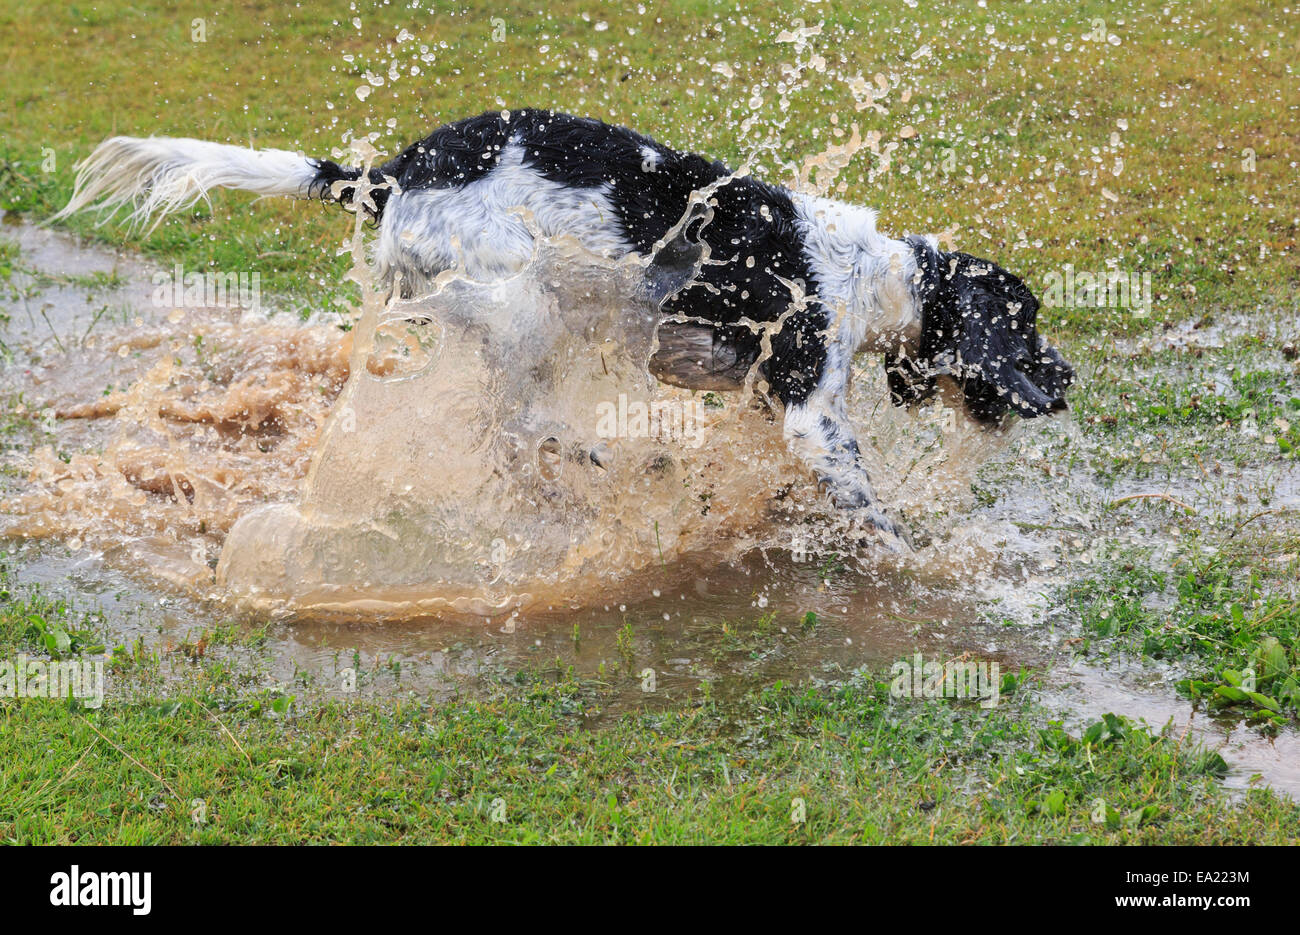 An adult Black and White English Springer Spaniel dog having fun splashing alone in a puddle of water. England, - Stock Image